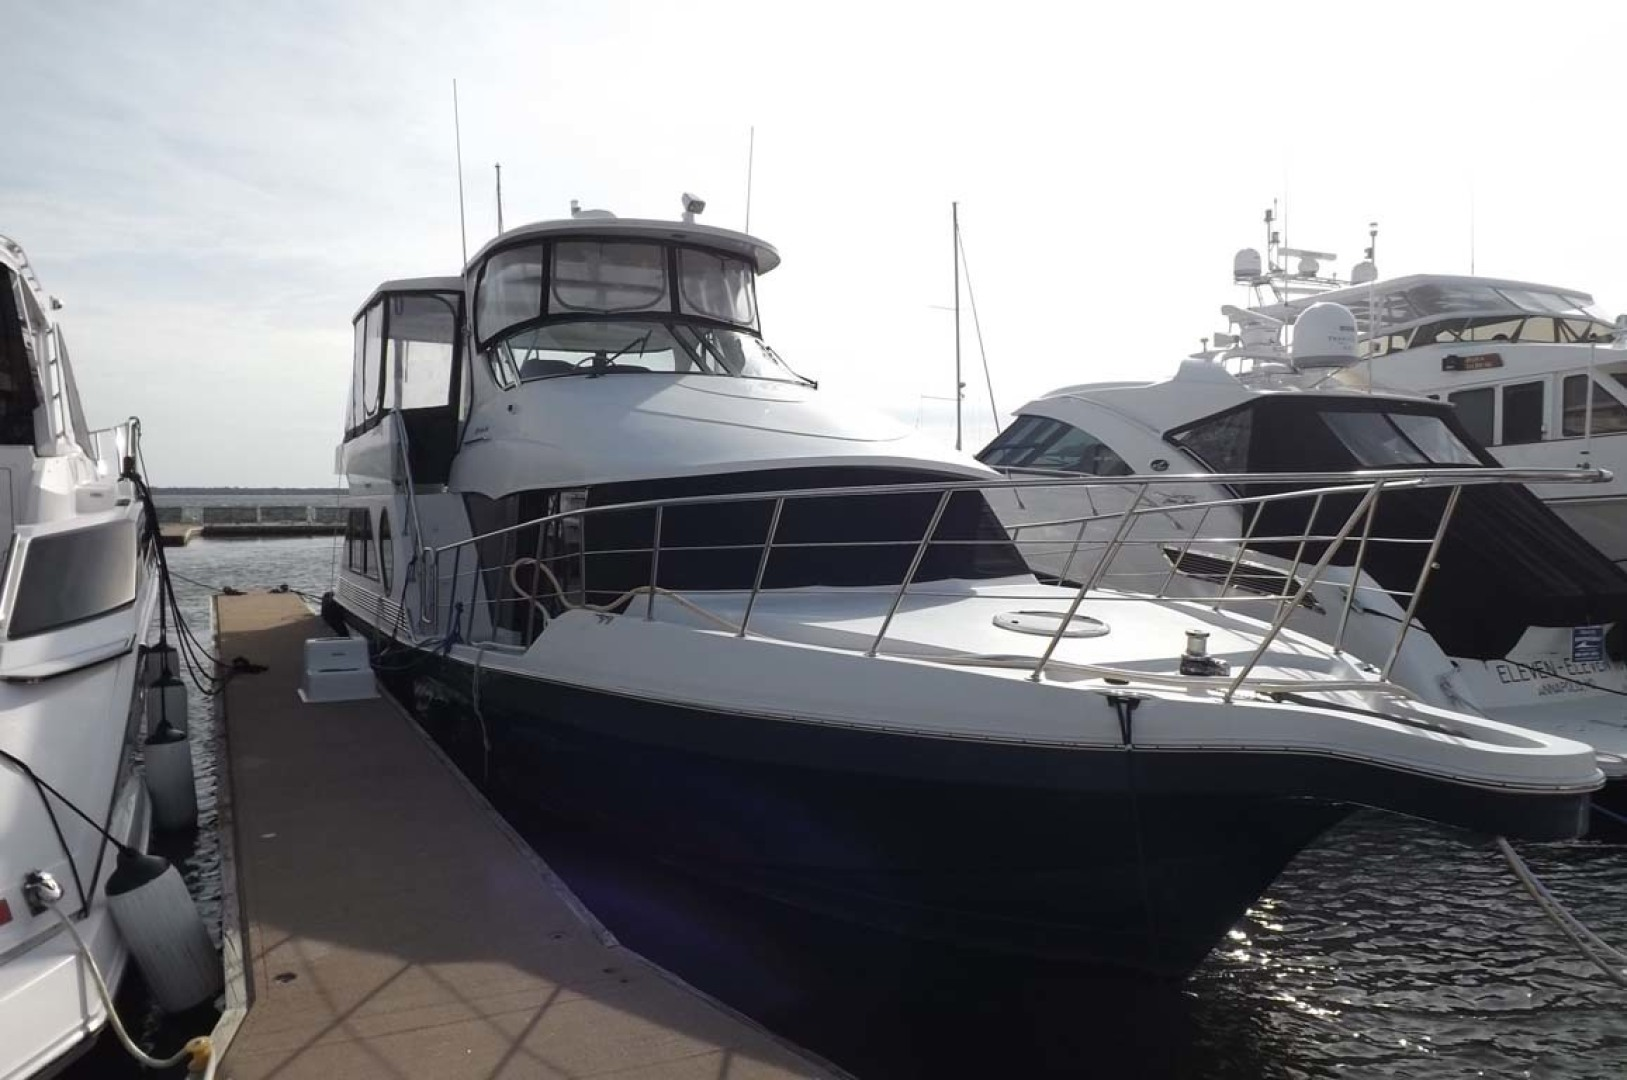 Bluewater Yachts-5200 2006 -Mount Pleasant-South Carolina-United States-\Starboard Bow-1412955 | Thumbnail